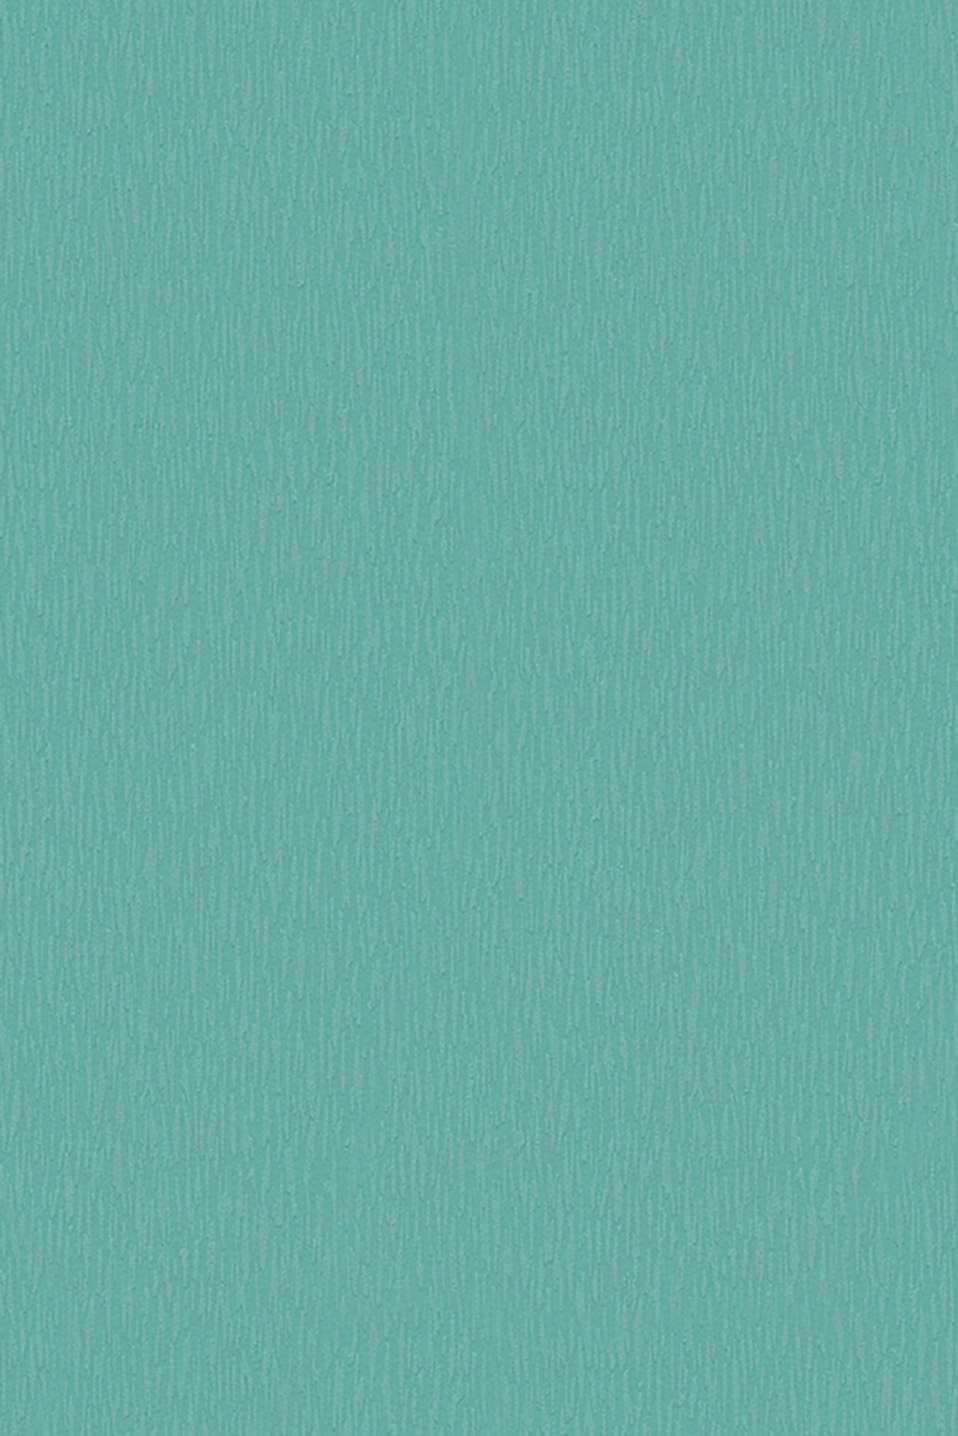 Esprit - Vlies wallpaper Deep Summer Plain